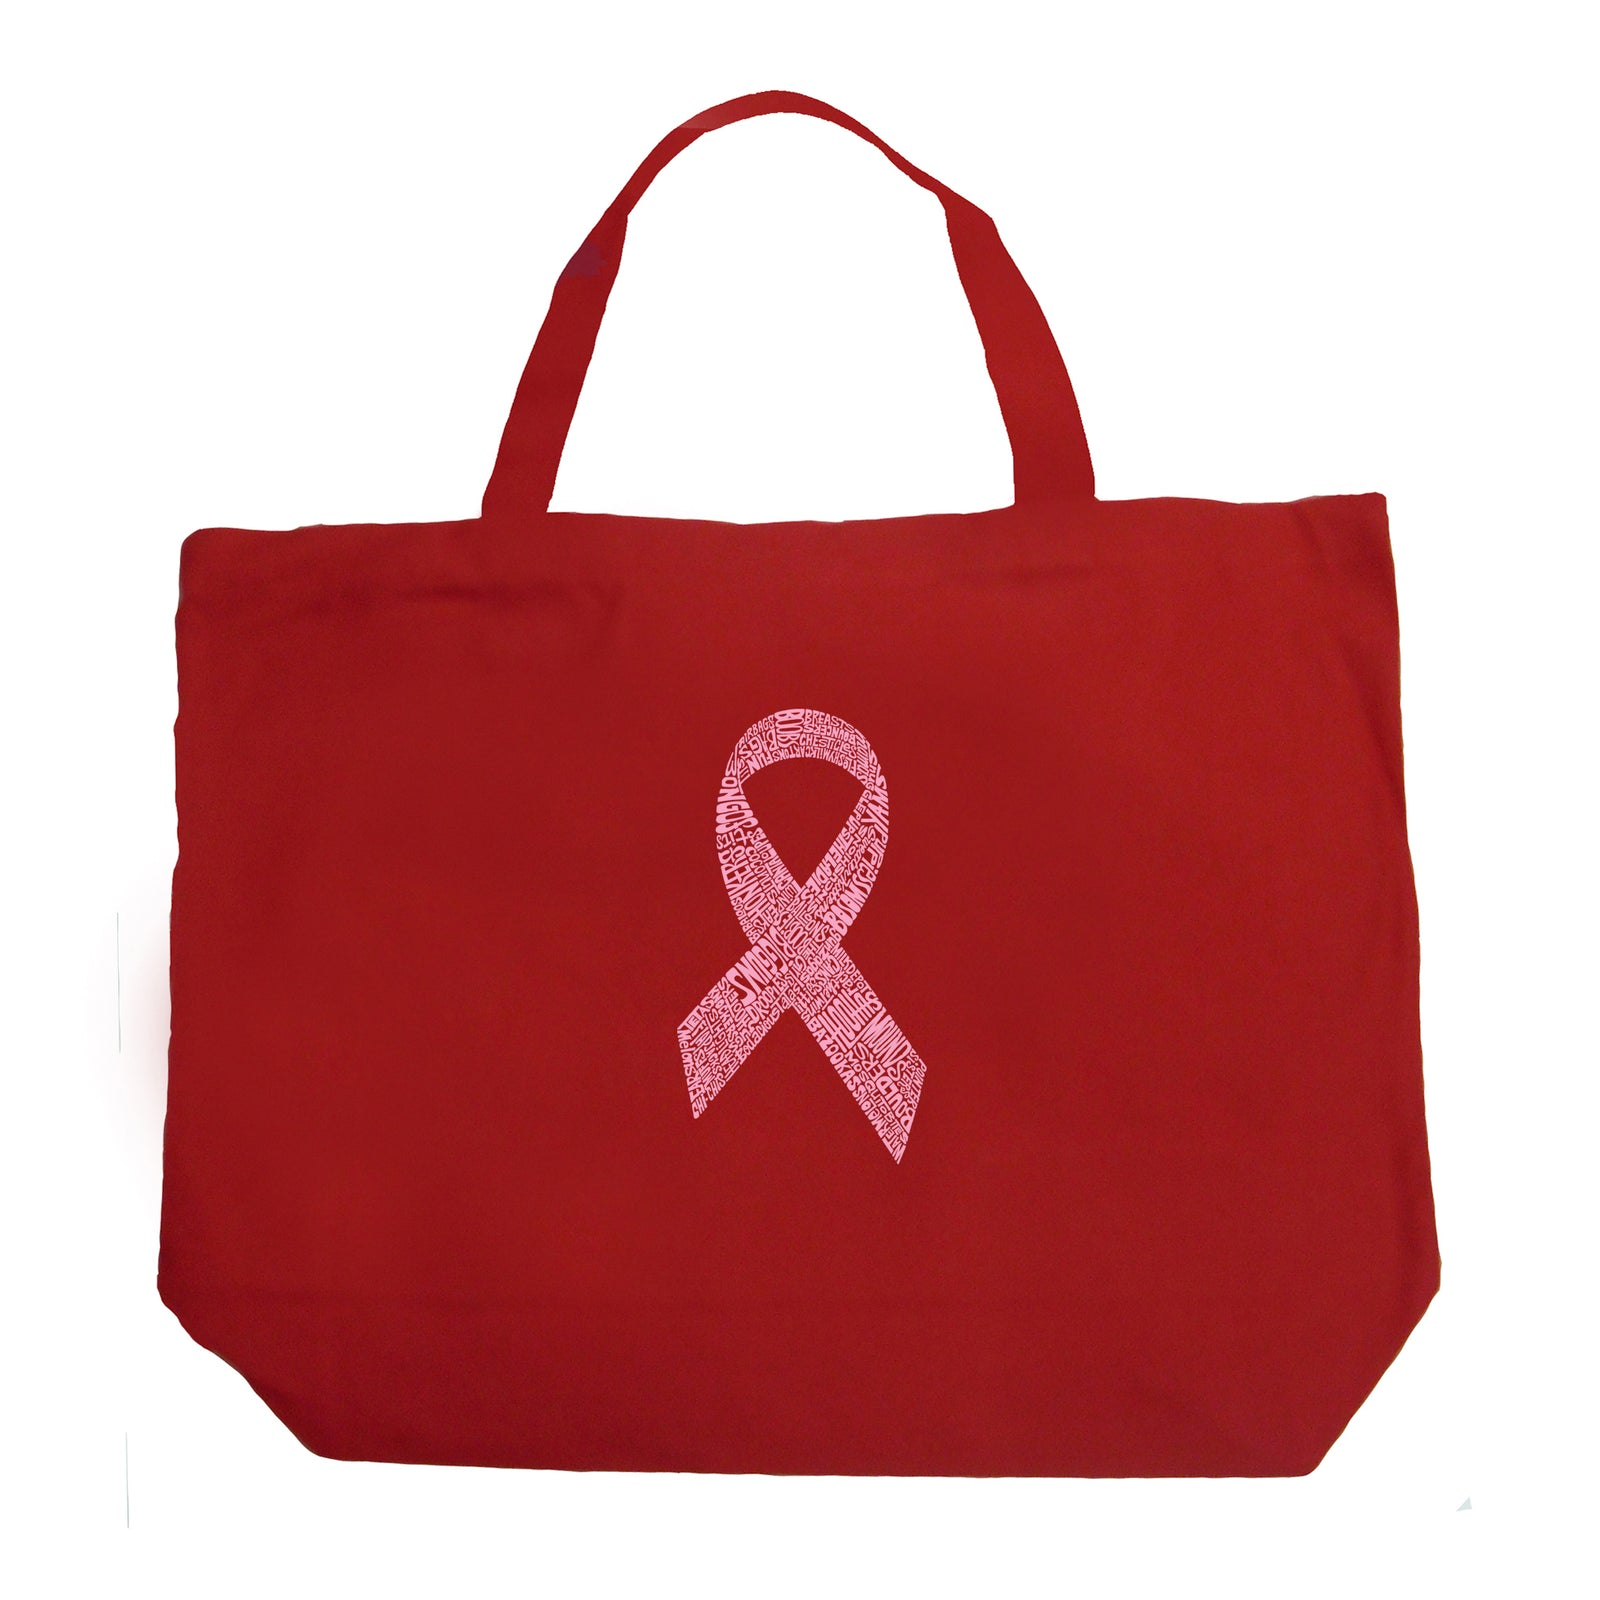 Large Tote Bag - CREATED OUT OF 50 SLANG TERMS FOR BREASTS